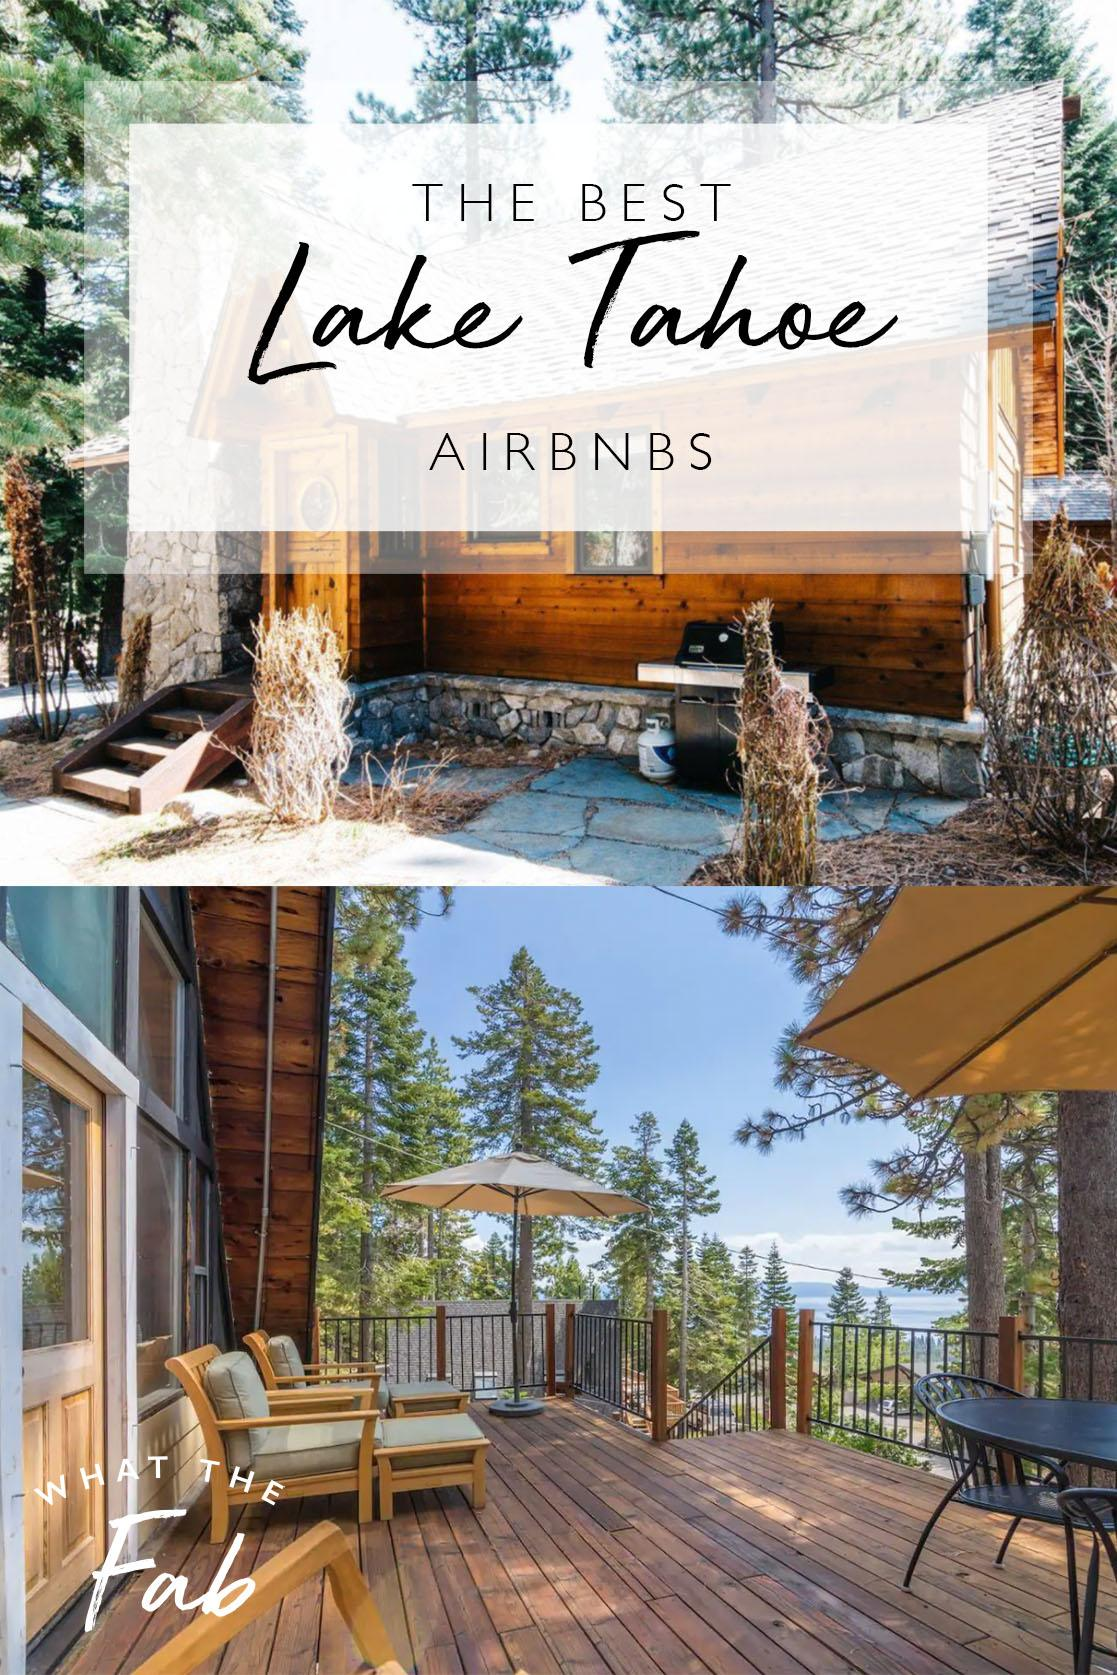 The best Lake Tahoe Airbnbs, by Travel Blogger What The Fab